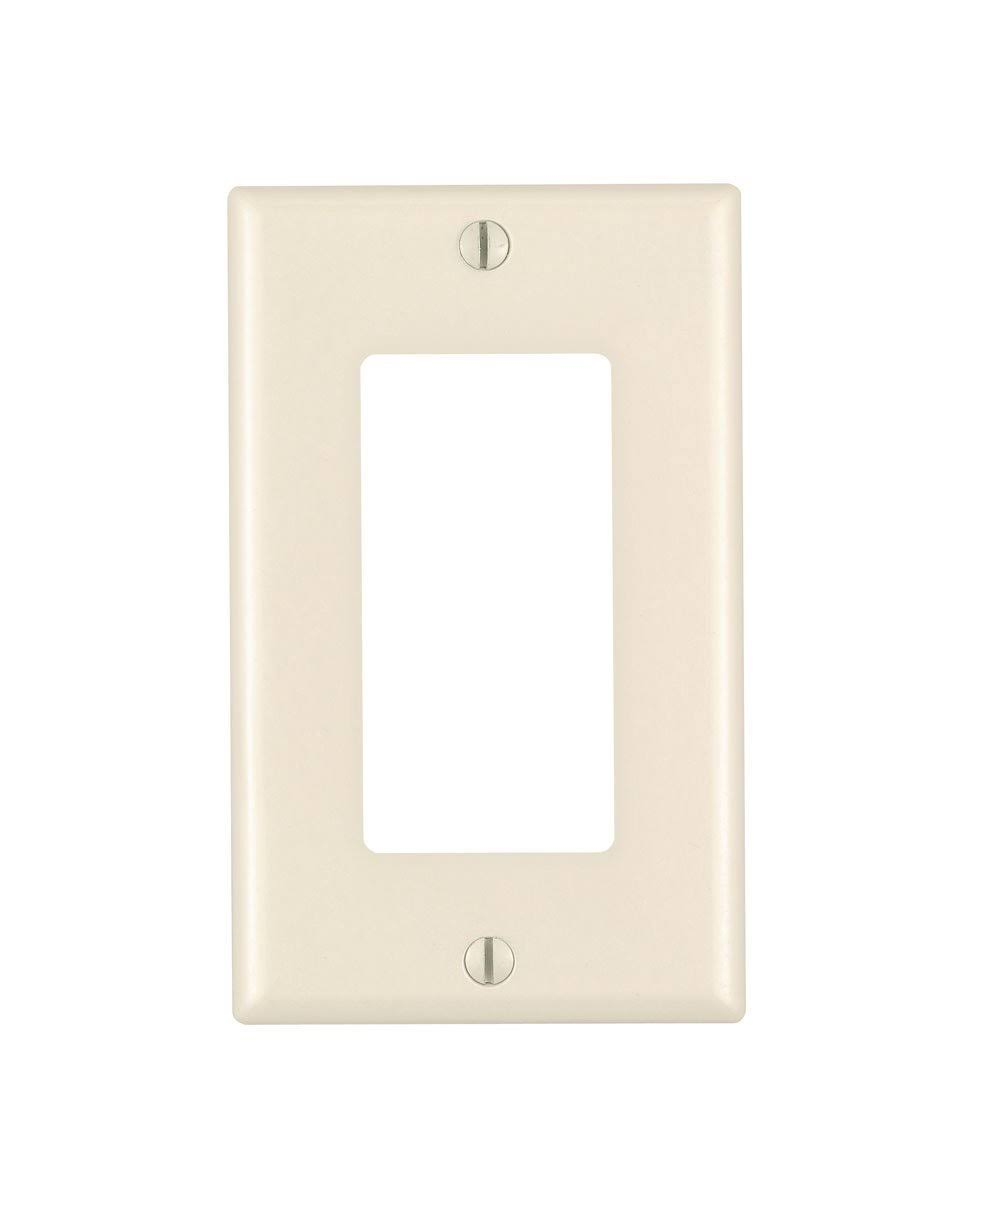 Leviton Wall Plate - Light Almond